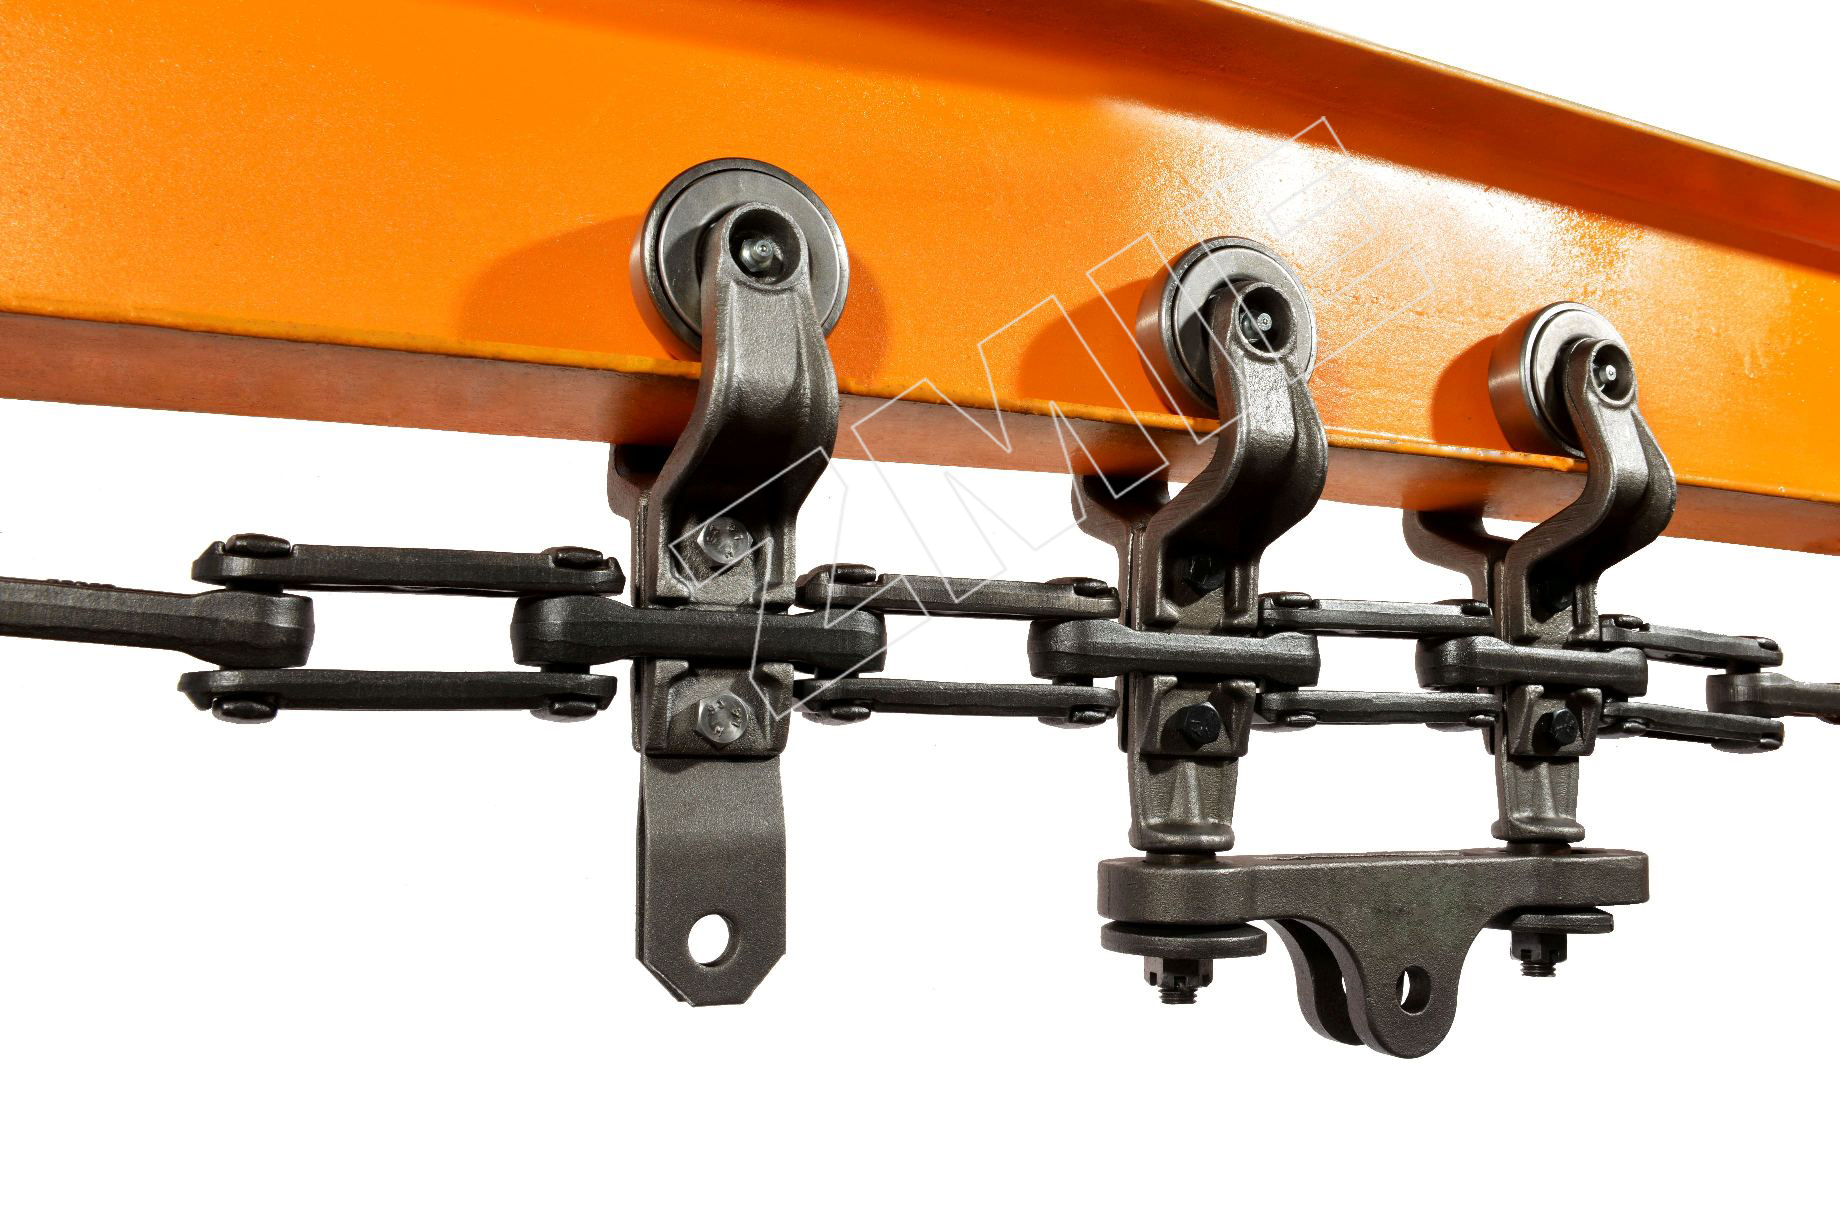 Drop Forged Chain : Drop forged chain for overhead conveyor